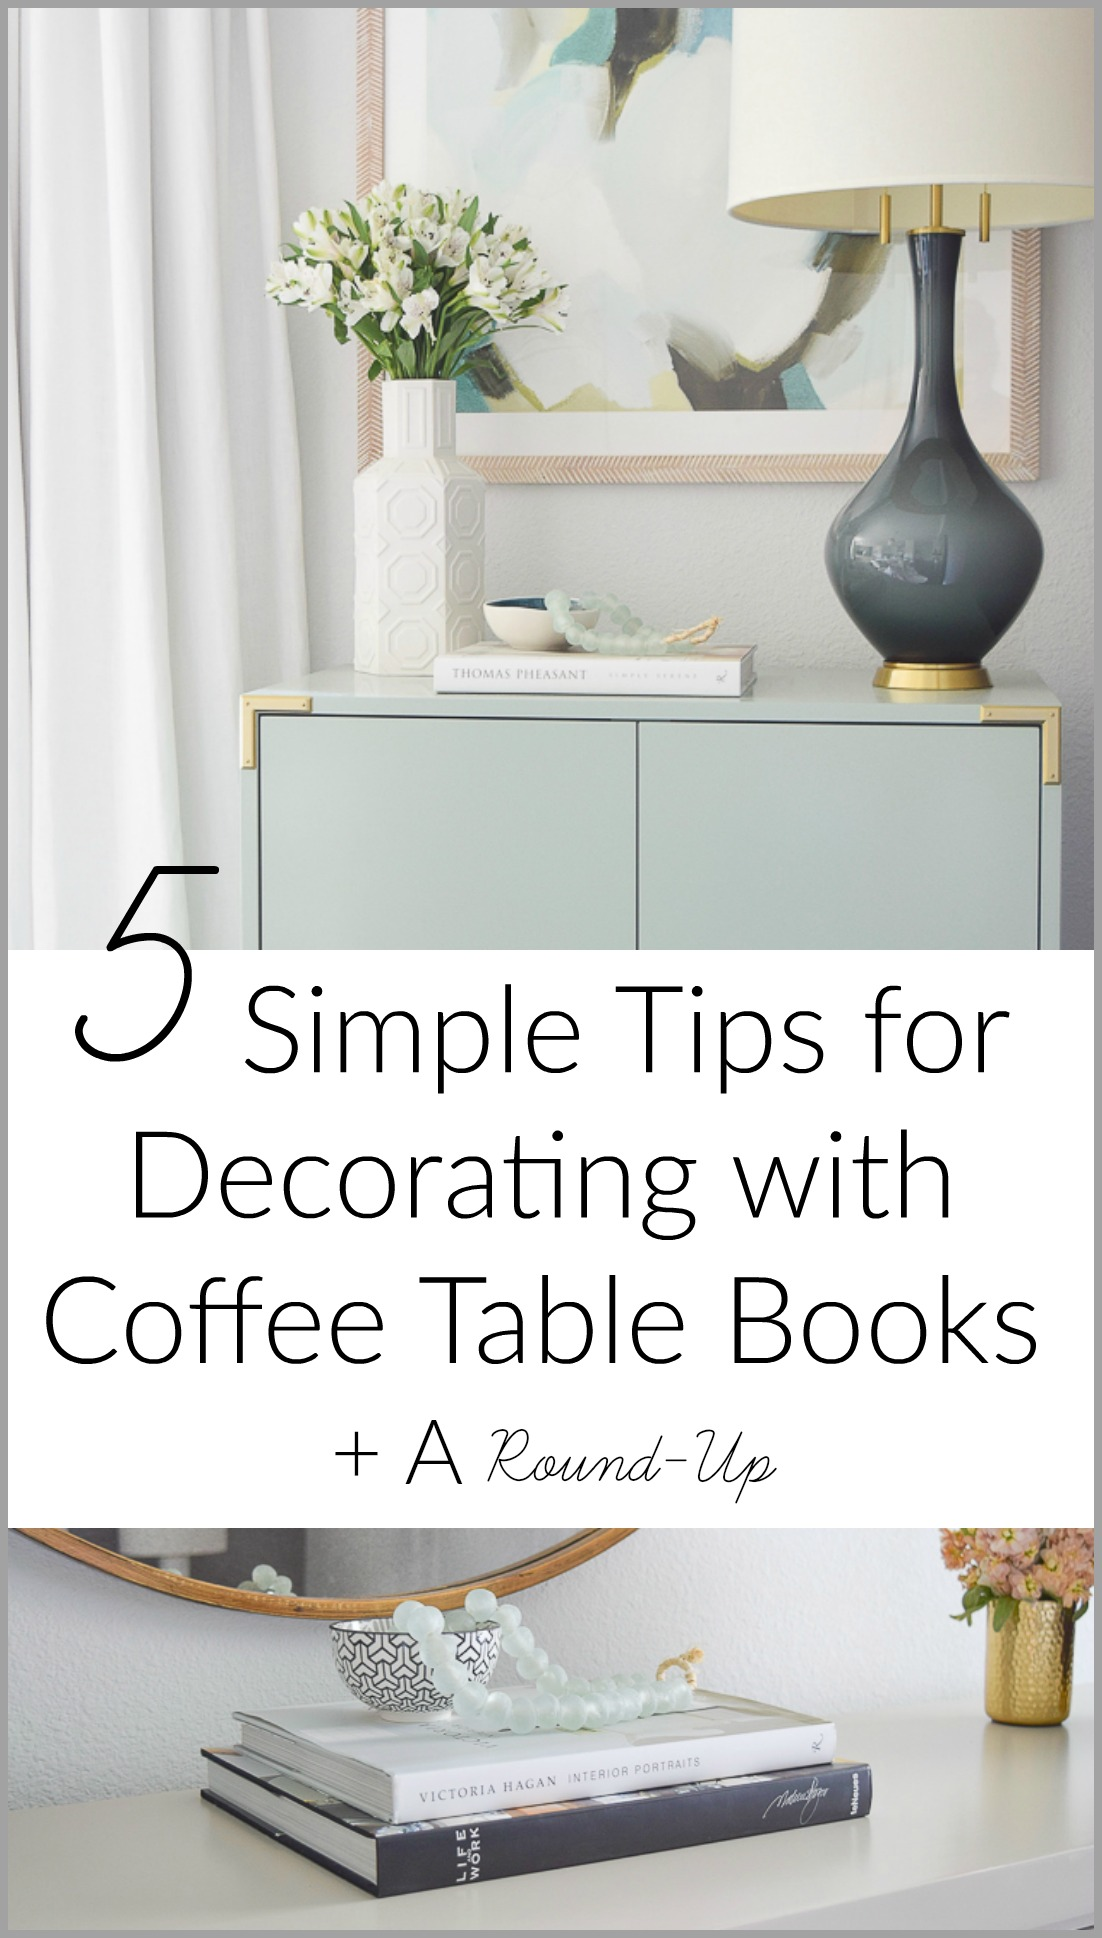 5 Simple Tips for Decorating with Coffee Table Books